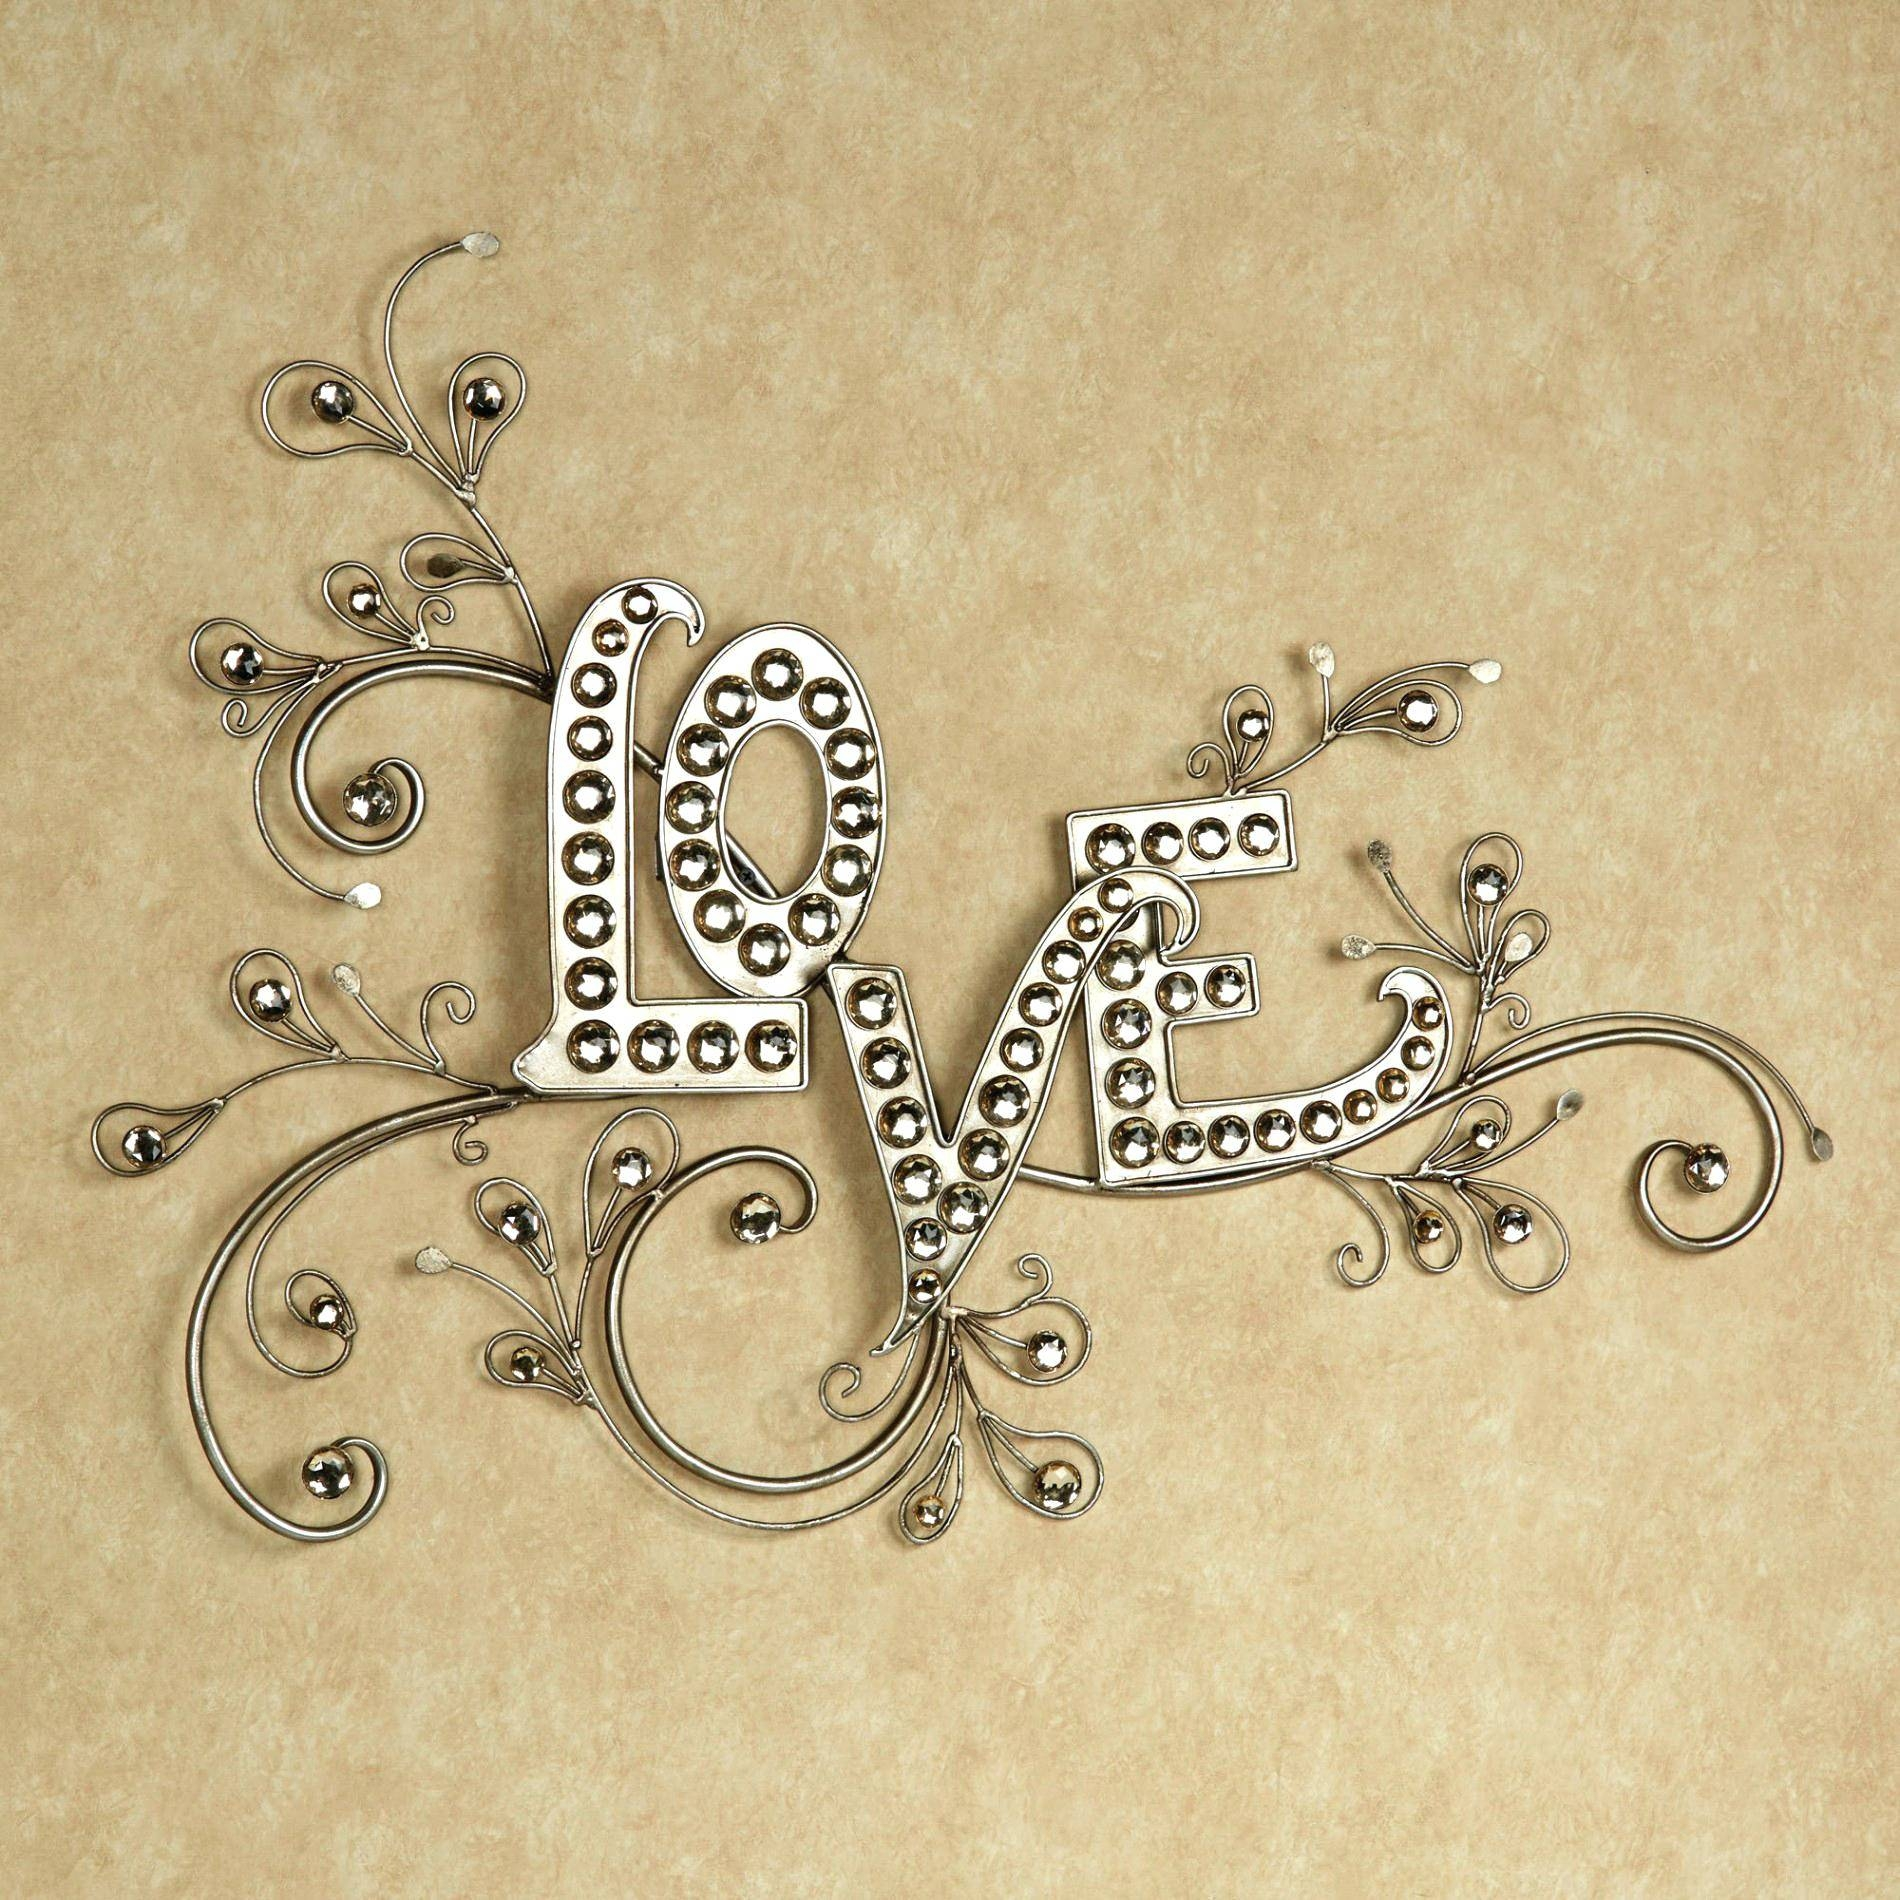 View Photos of Live Love Laugh Metal Wall Art (Showing 19 of 25 Photos)